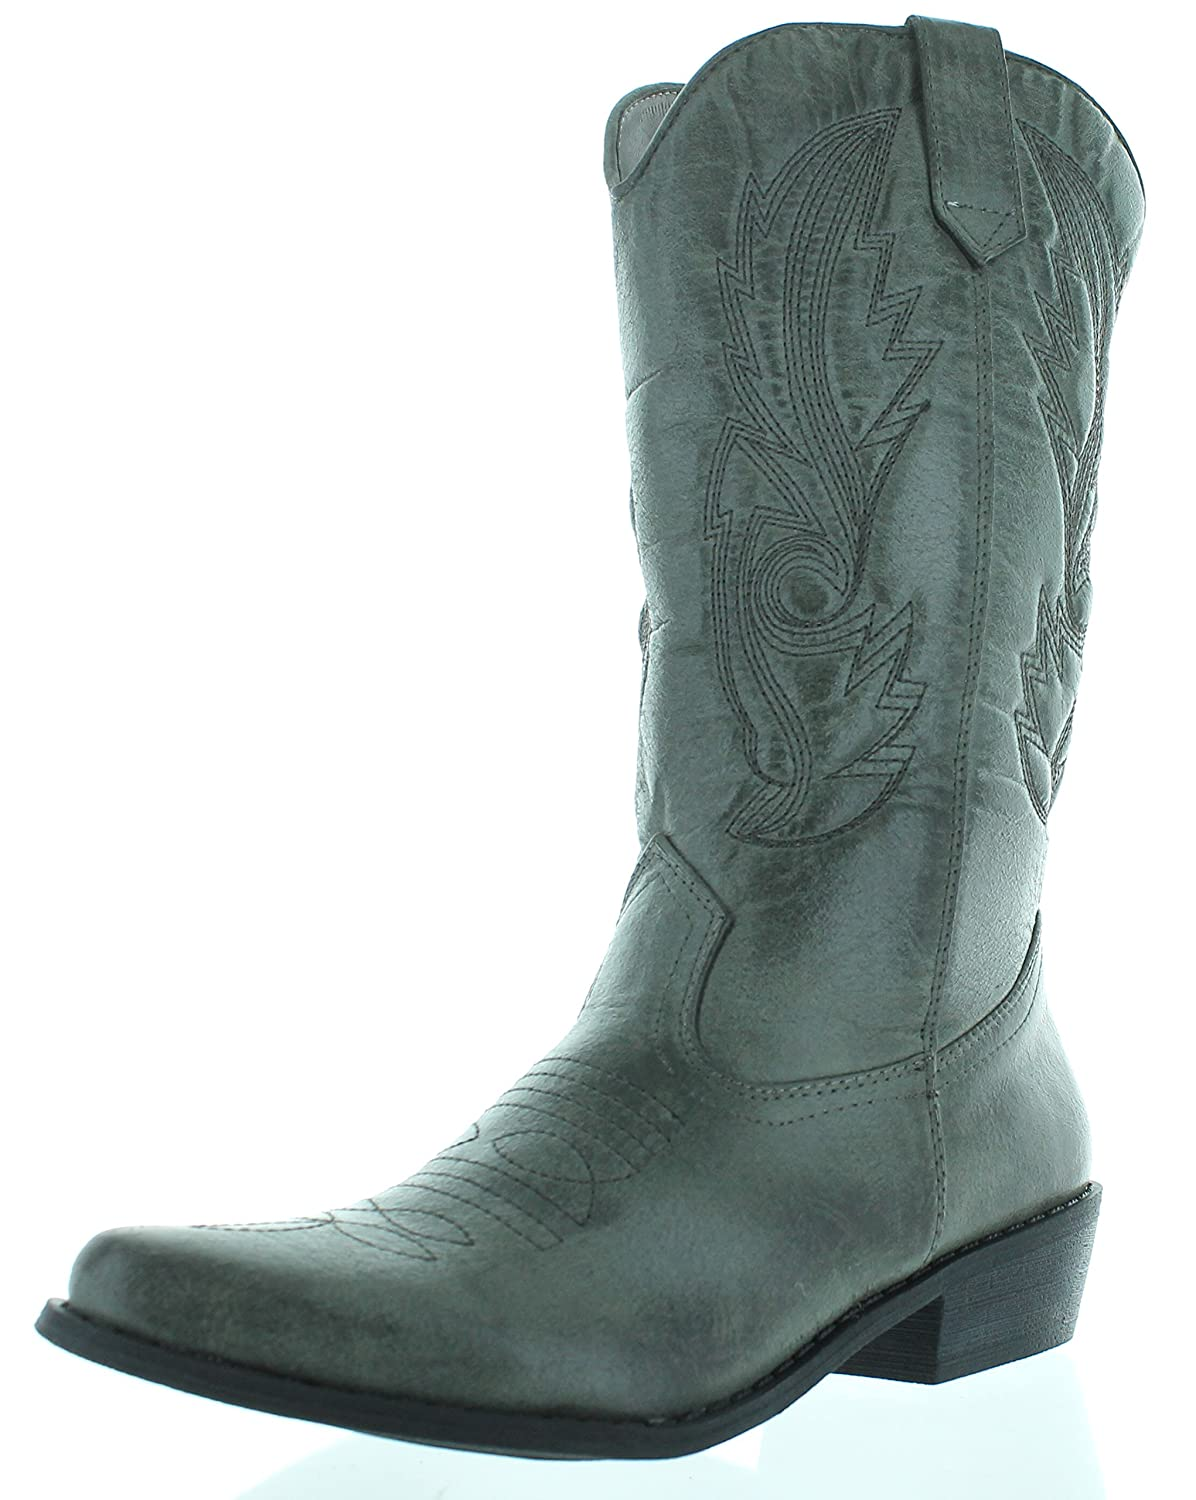 Coconuts by Matisse Women's Gaucho Boot B01N4KOT19 8 B(M) US|Grey